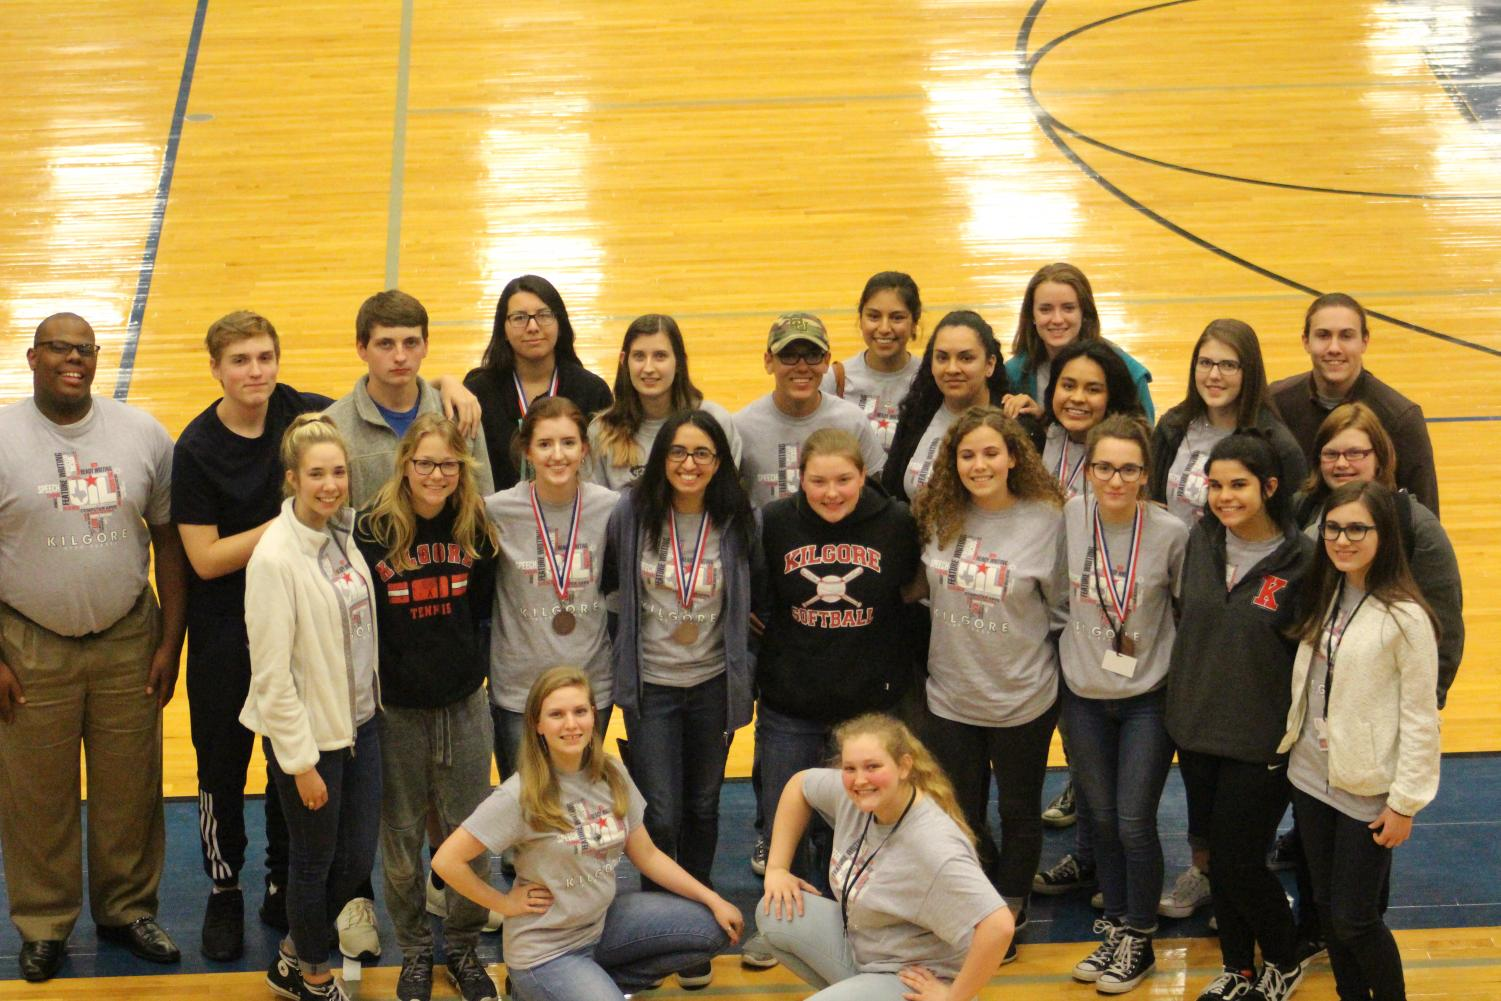 KHS UIL Team Poses After District March 21